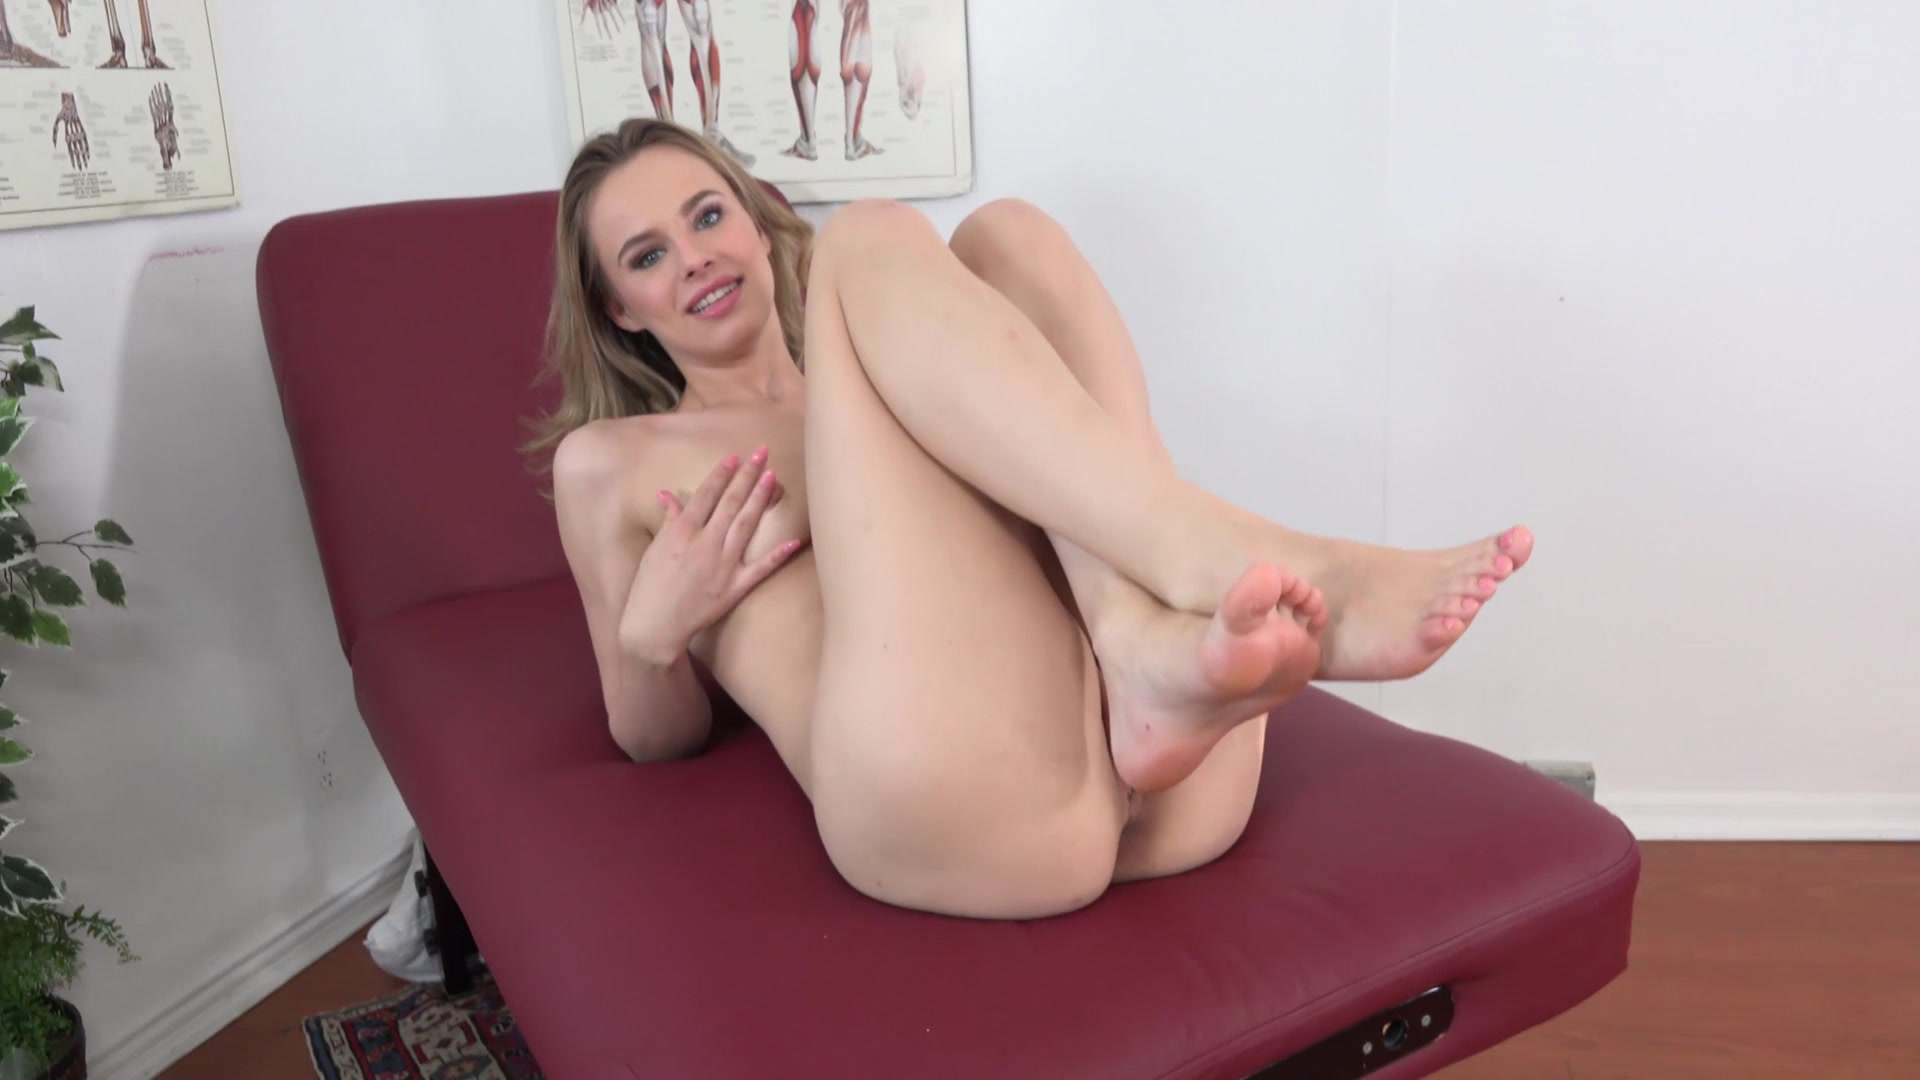 Big cock make her squirt